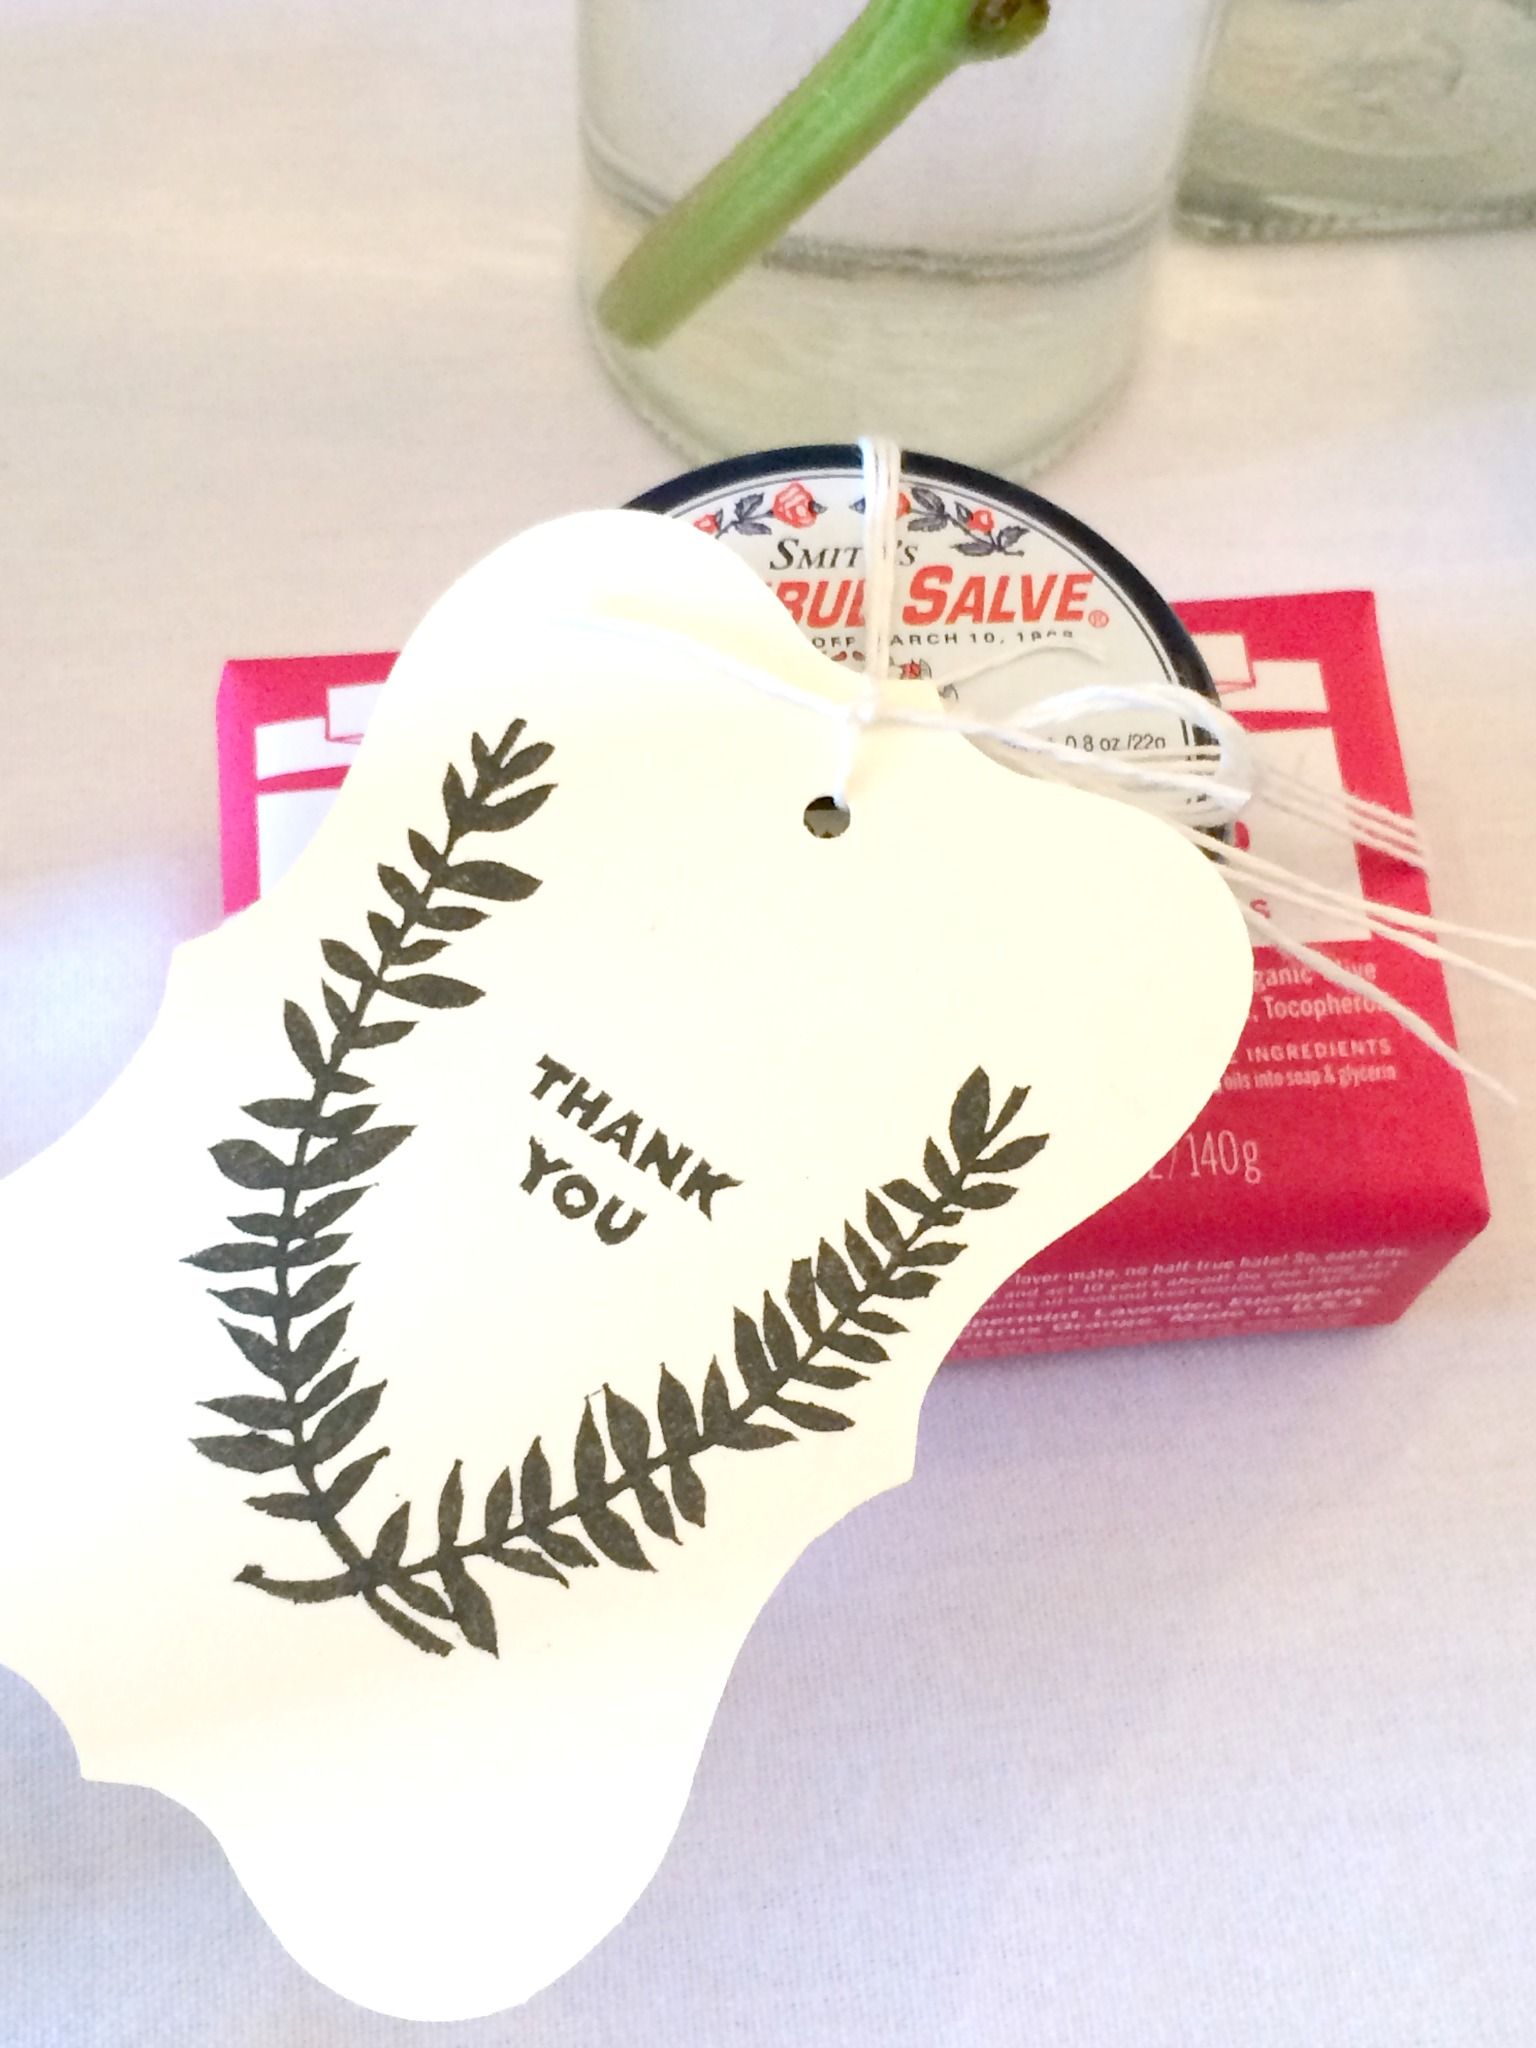 Rose Salve Bridal Shower Favors.jpg